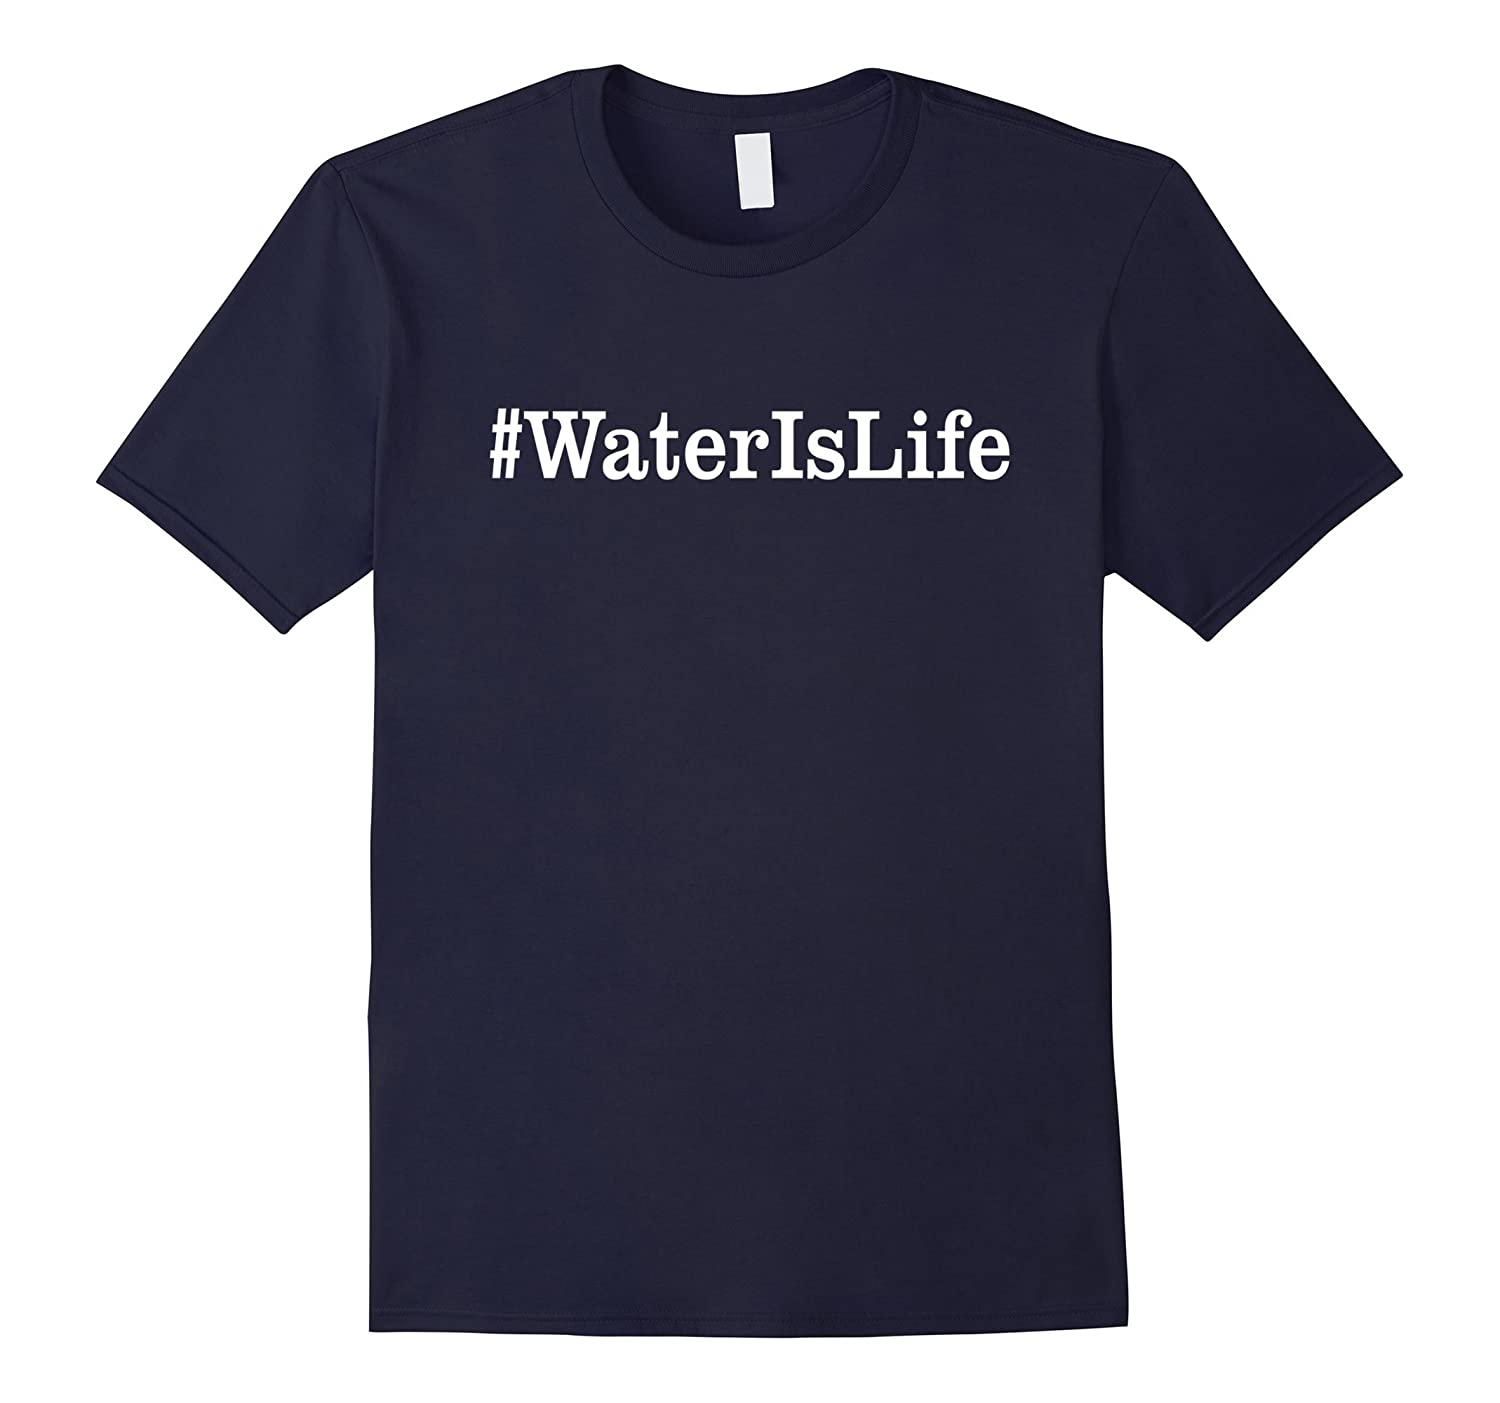 #waterislife - Water is life T shirt-BN